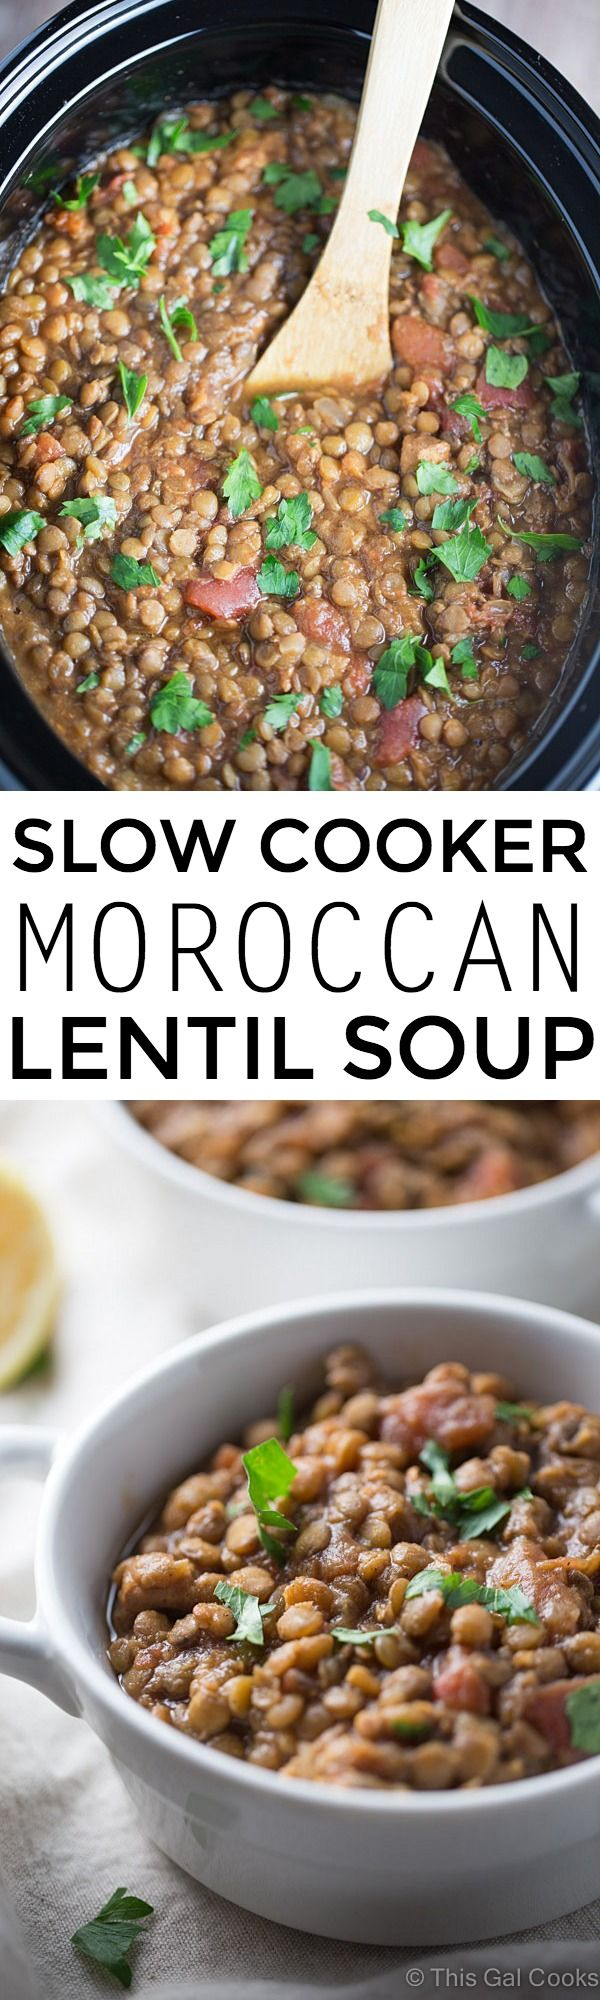 Slow Cooker Moroccan Lentil Soup. Under 300 calories per serving! | This Gal Cooks #dinner